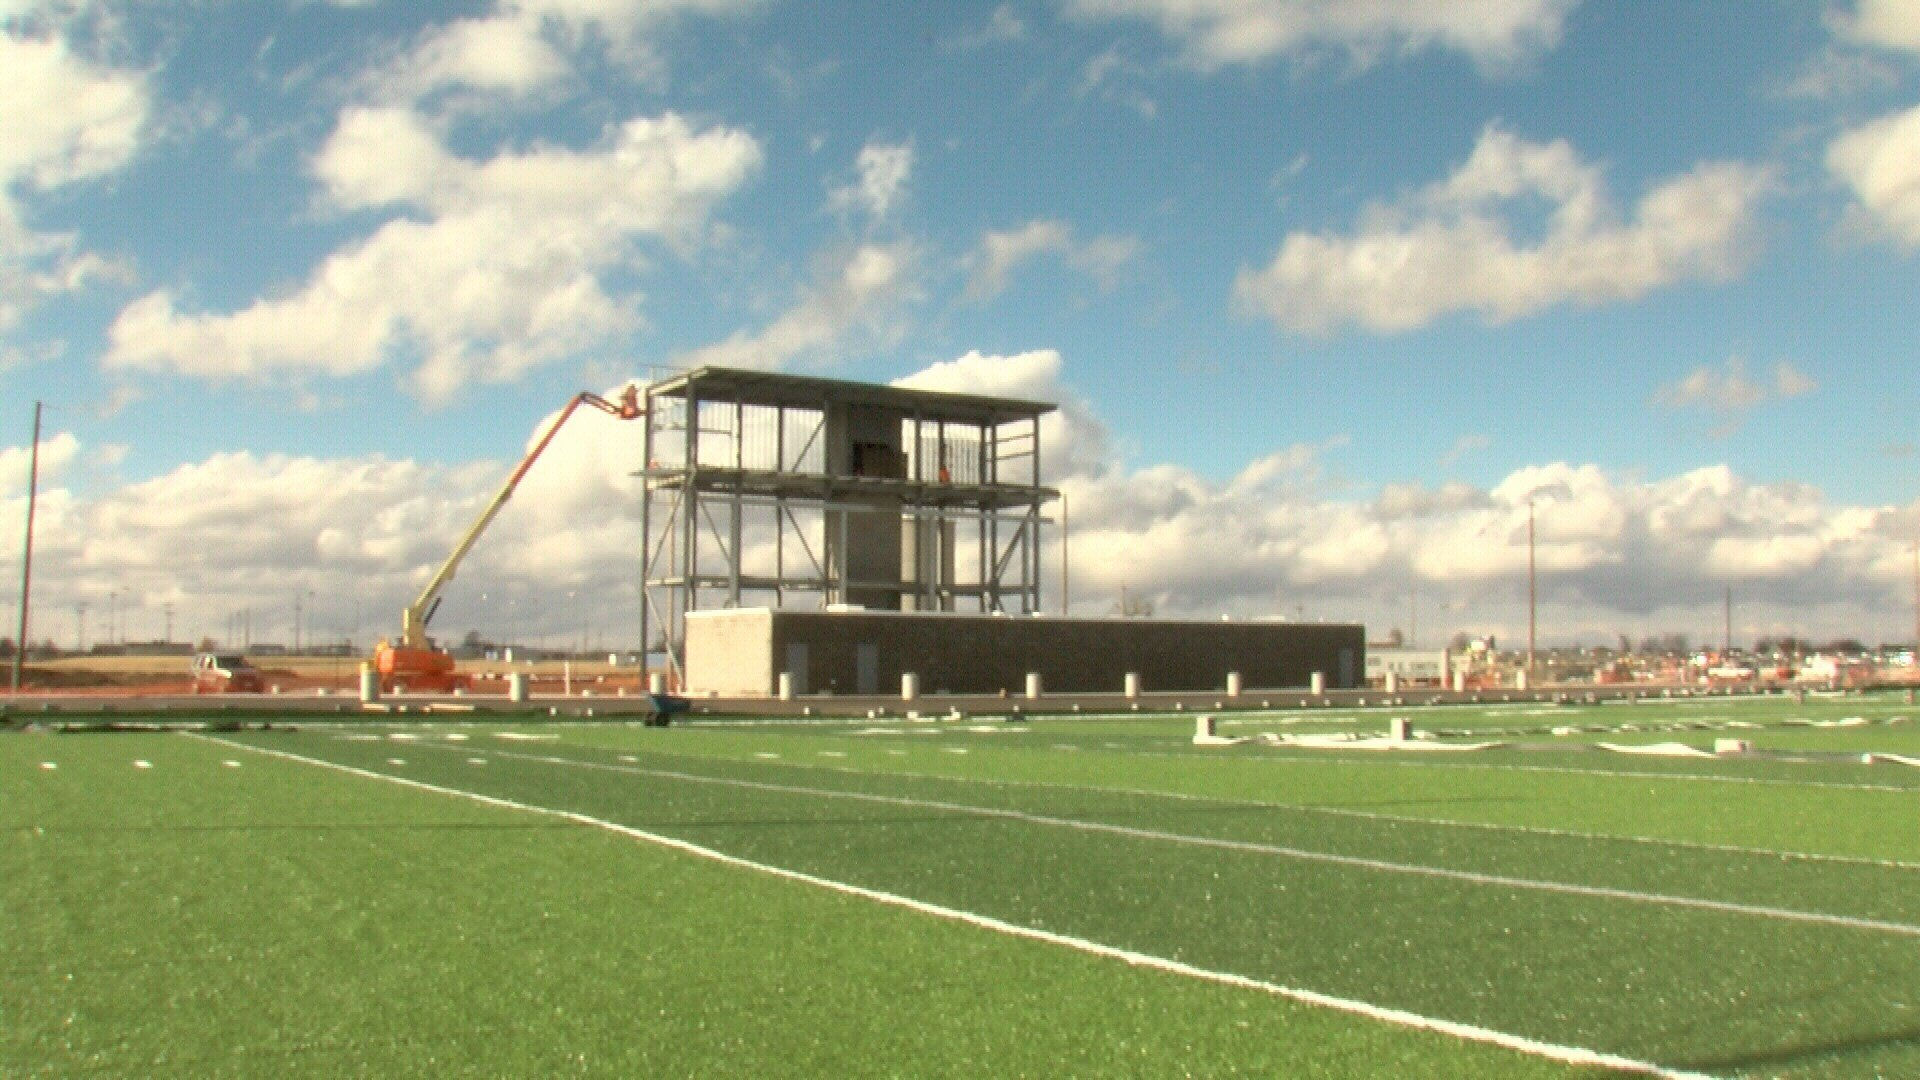 Home stand and press box.  Construction is ongoing for both.